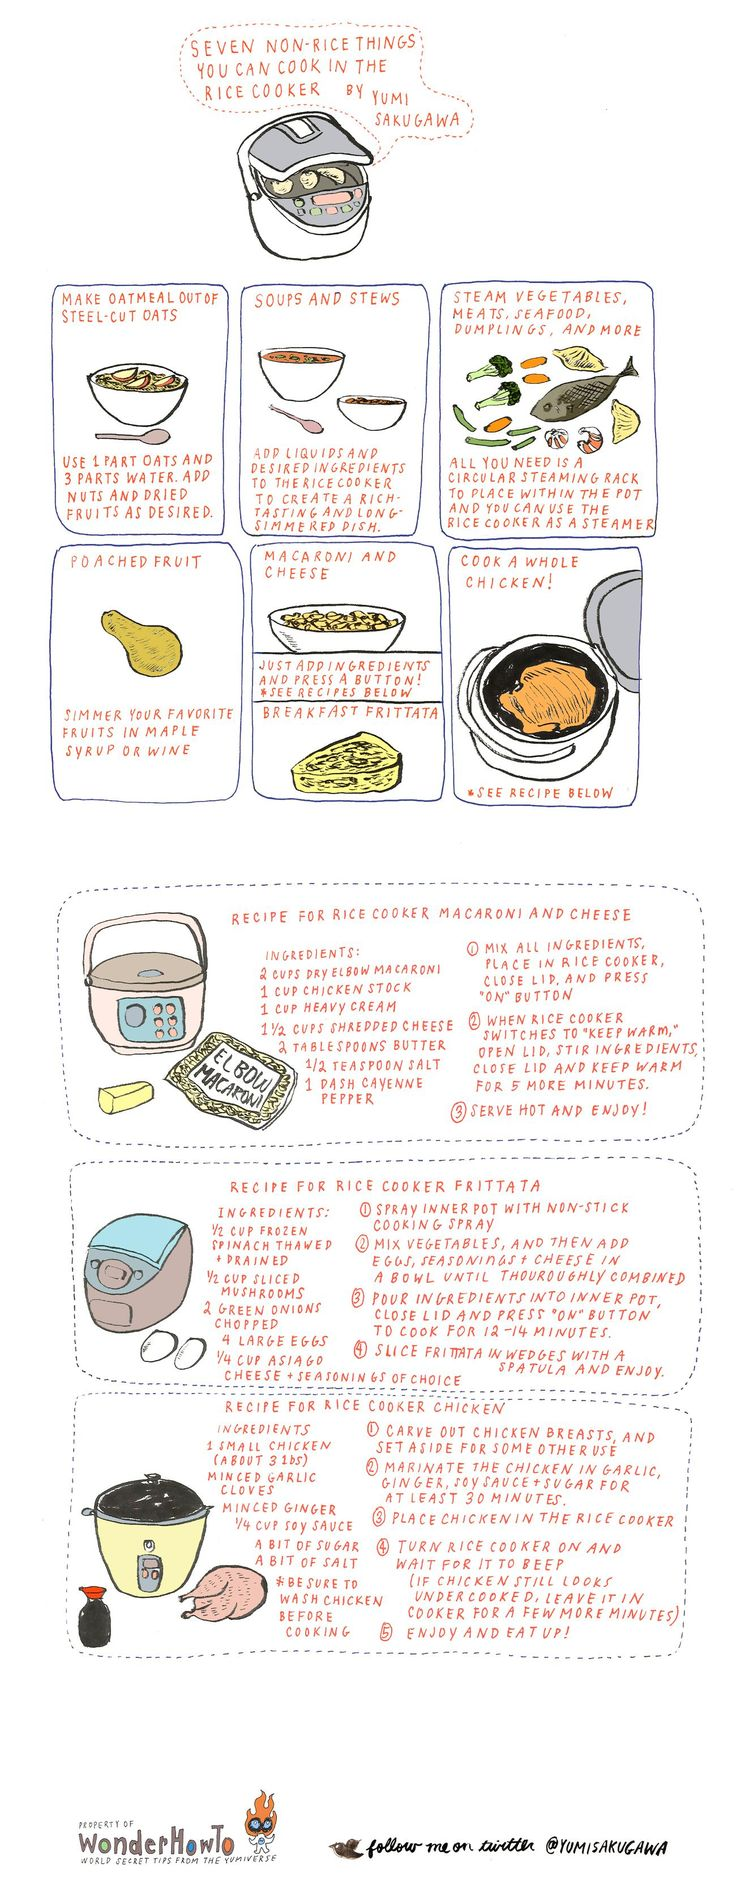 How To: 7 Nonrice Dishes You Can Cook In A Rice Cooker